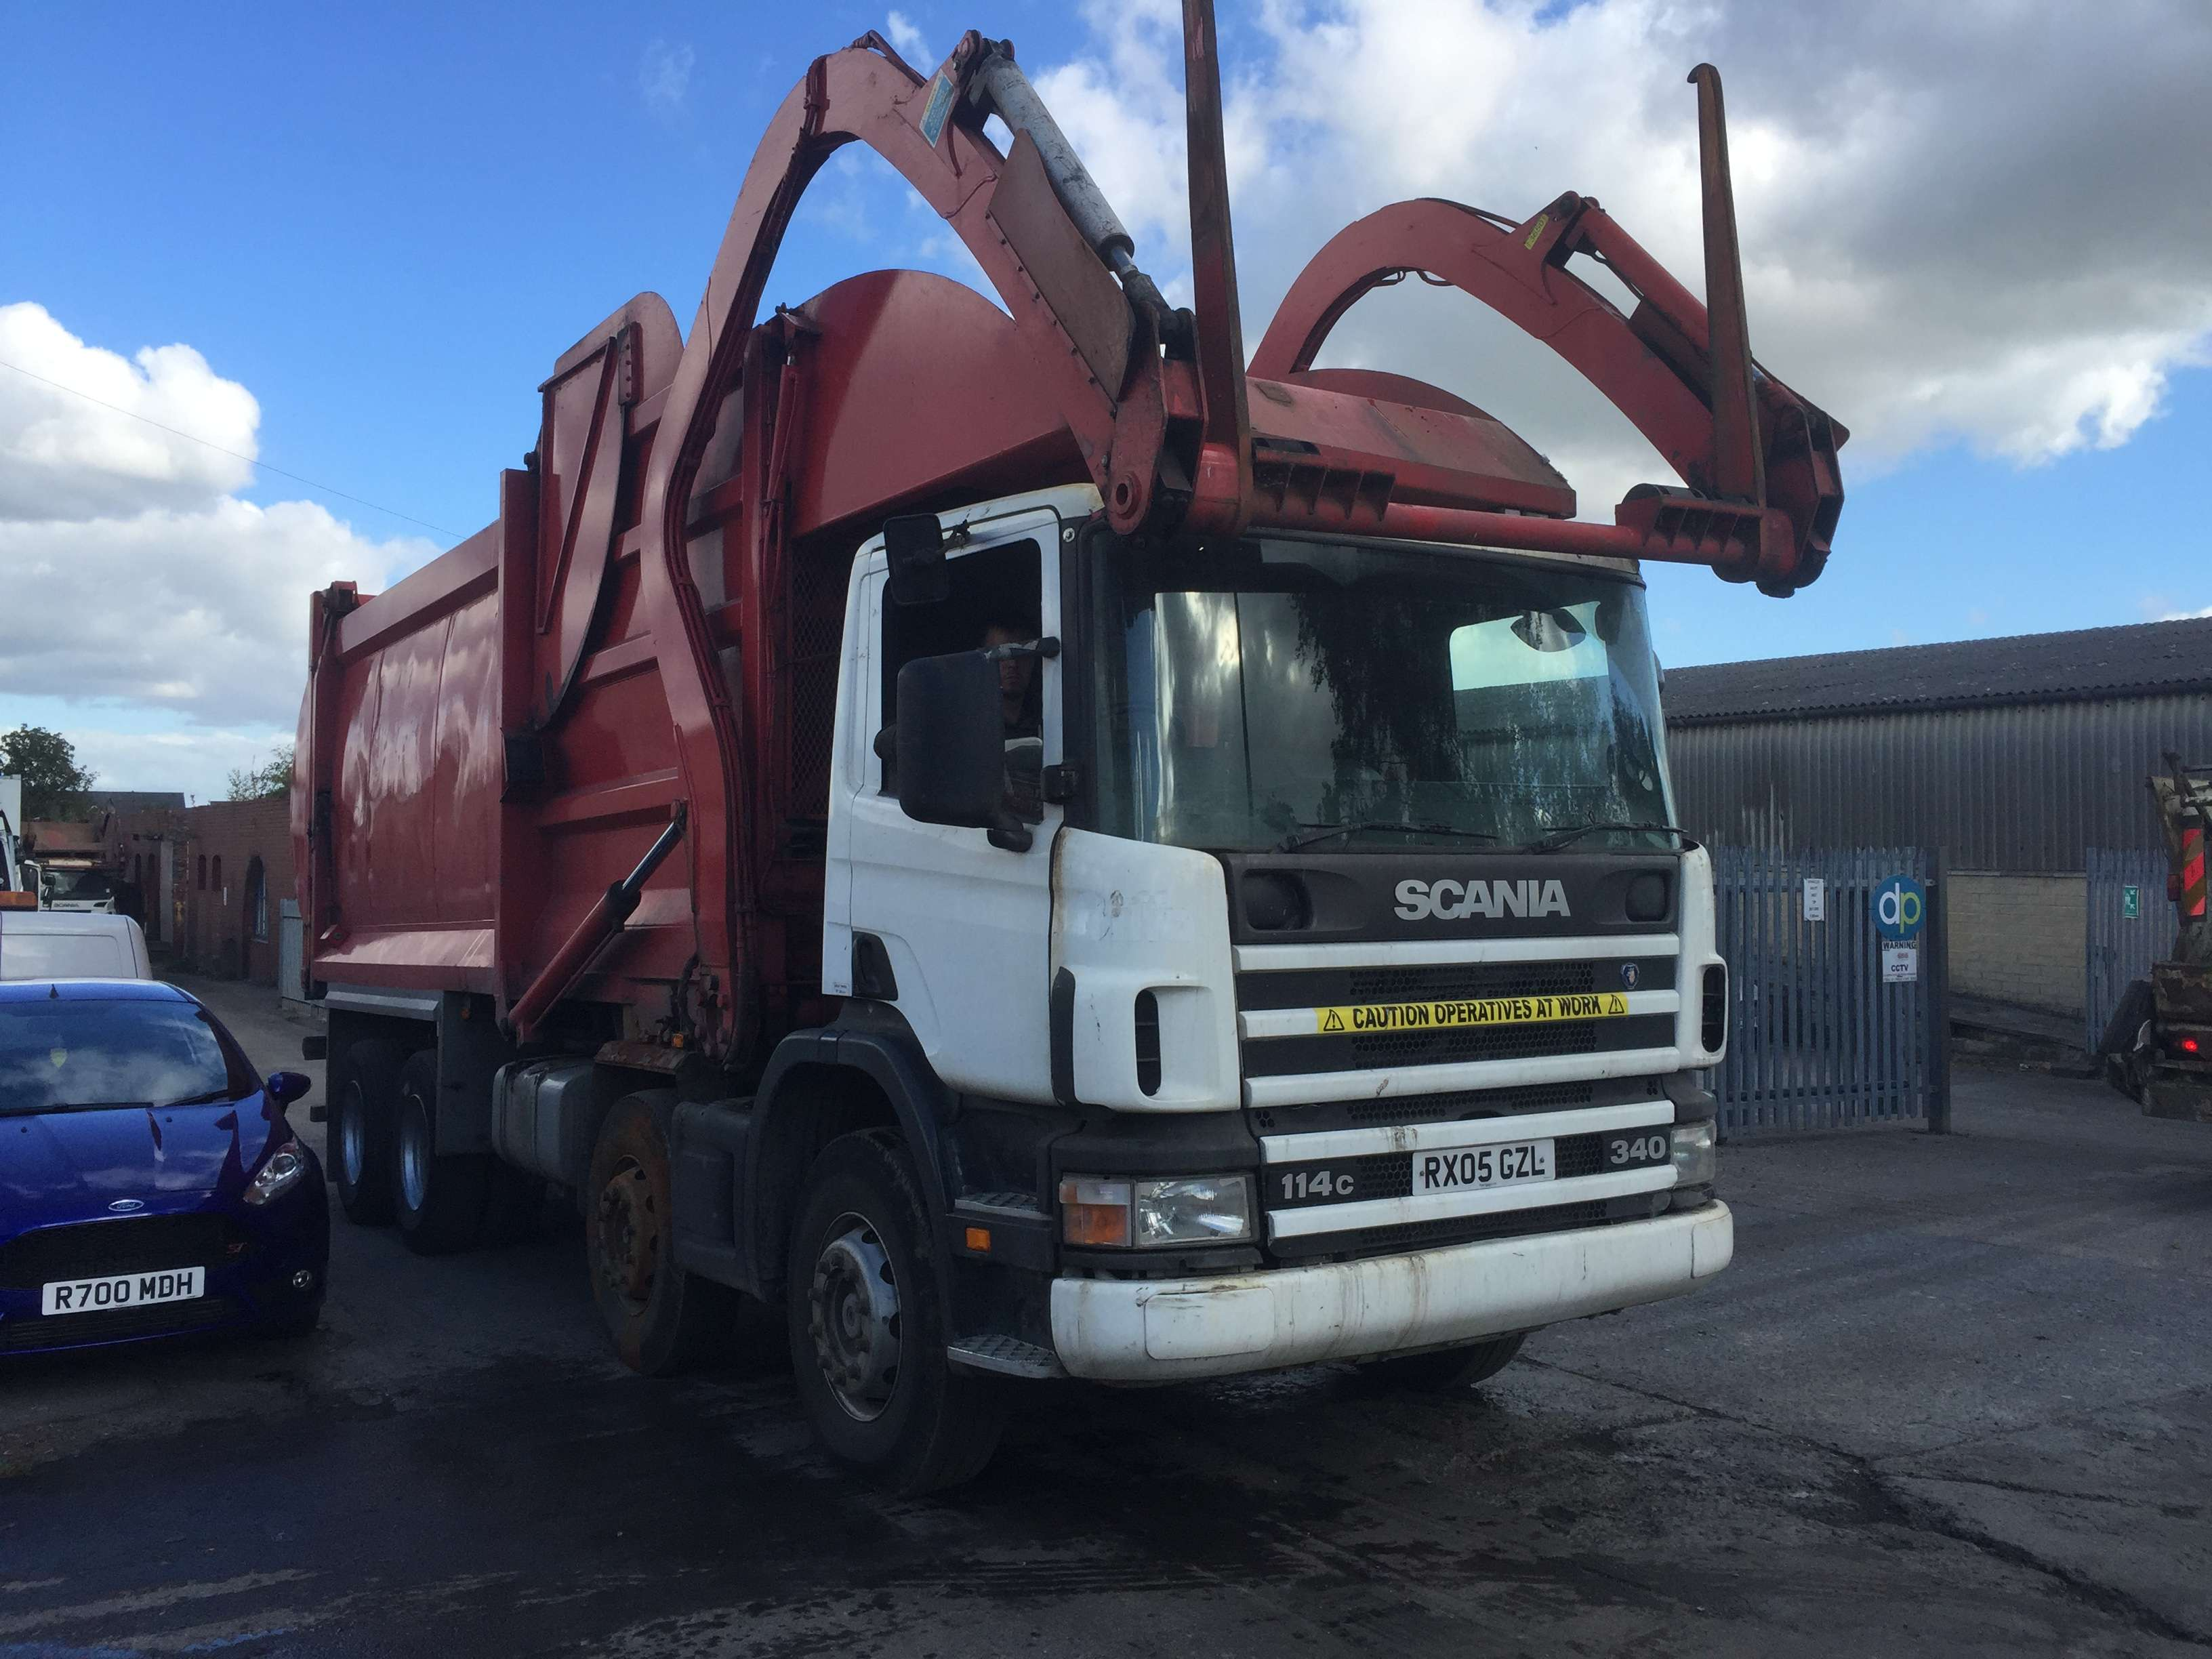 2005 Scania 114C 340 8x4 front end loader for sale 1